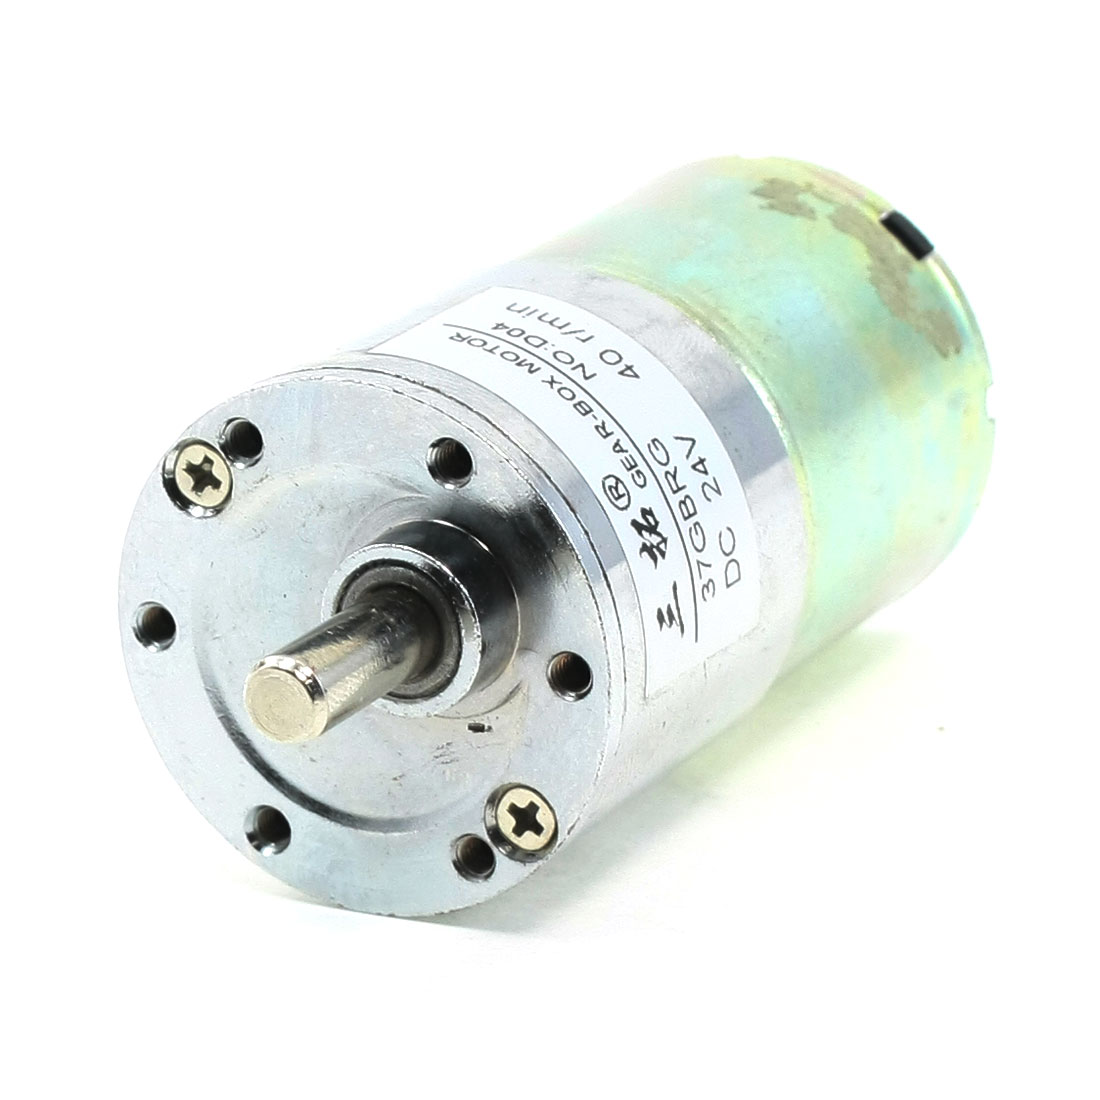 DC 24V 40 RPM 6mm Dia Shaft Magnetic Gearbox Electric Motor